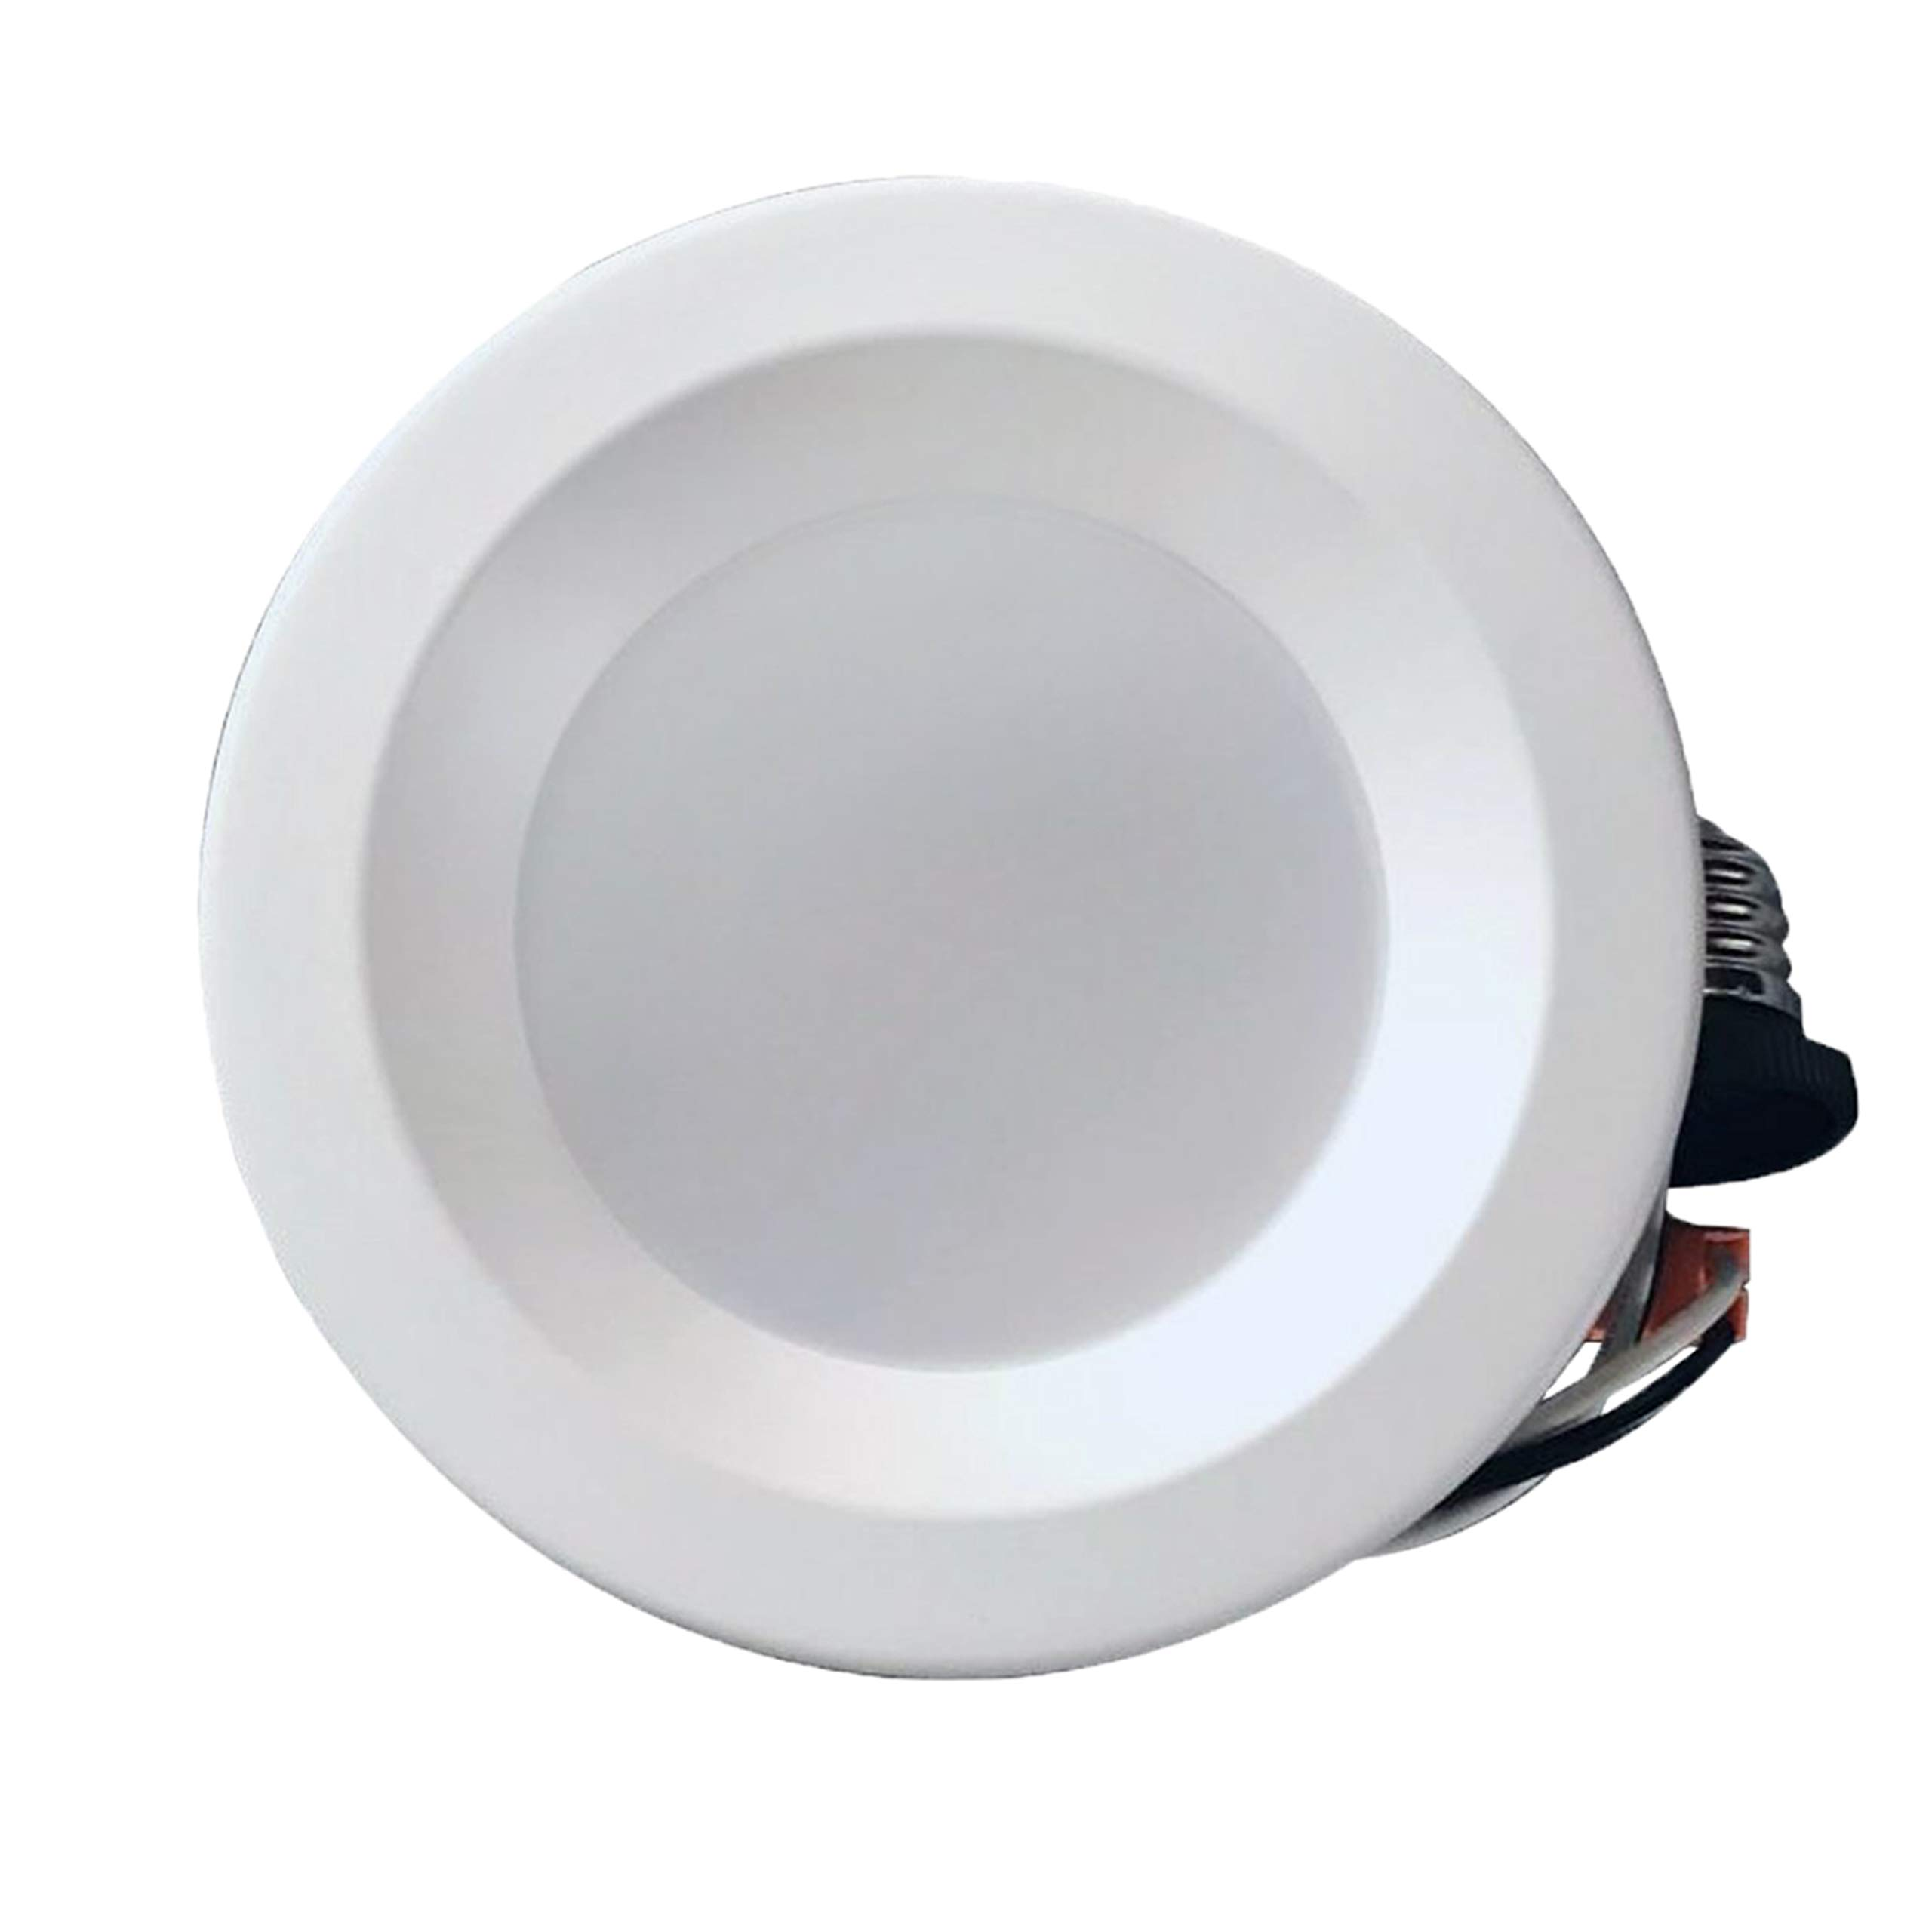 4'' Dimmable LED Downlight Smooth Trim, 540 Lumens, 4000K Cool White, Recessed Retrofit Lighting Trim, 9W (60W Replacement), Energy Star UL Listed,Title 24 JA8-2016 Compliant, 1 Pack